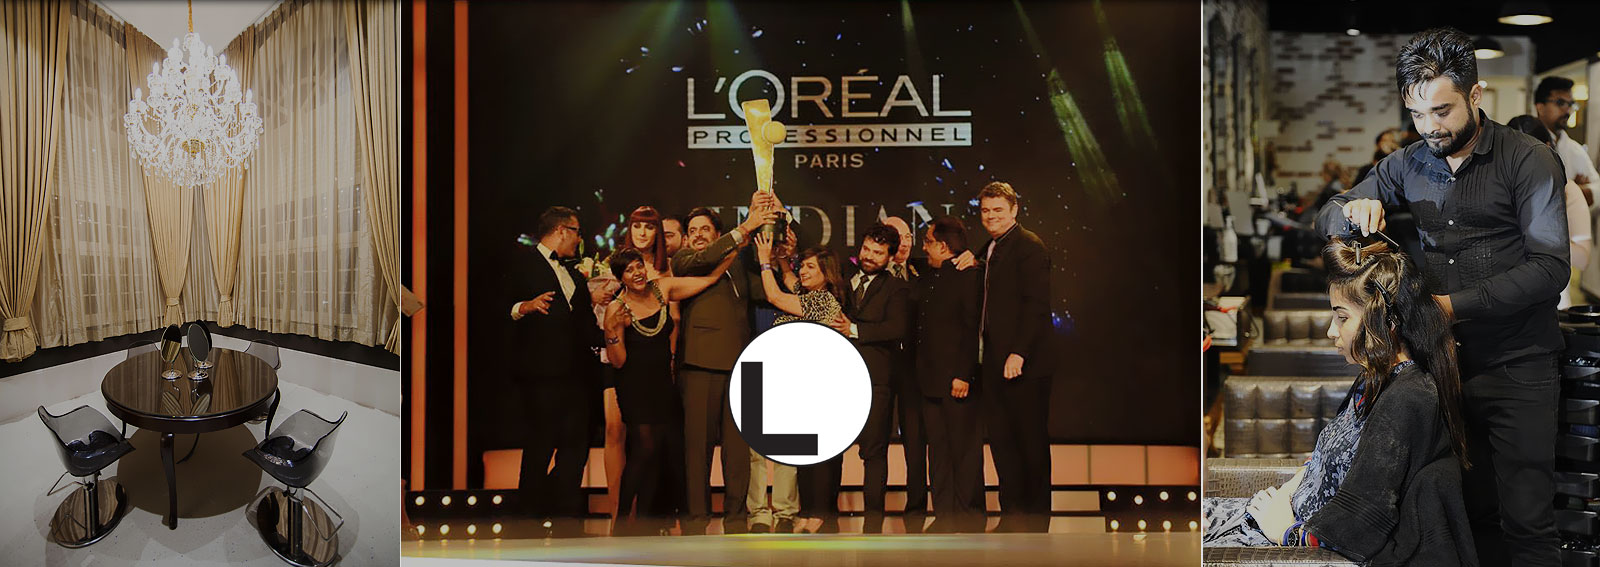 Banner Image - Award by Loreal received by Looks Salon Team